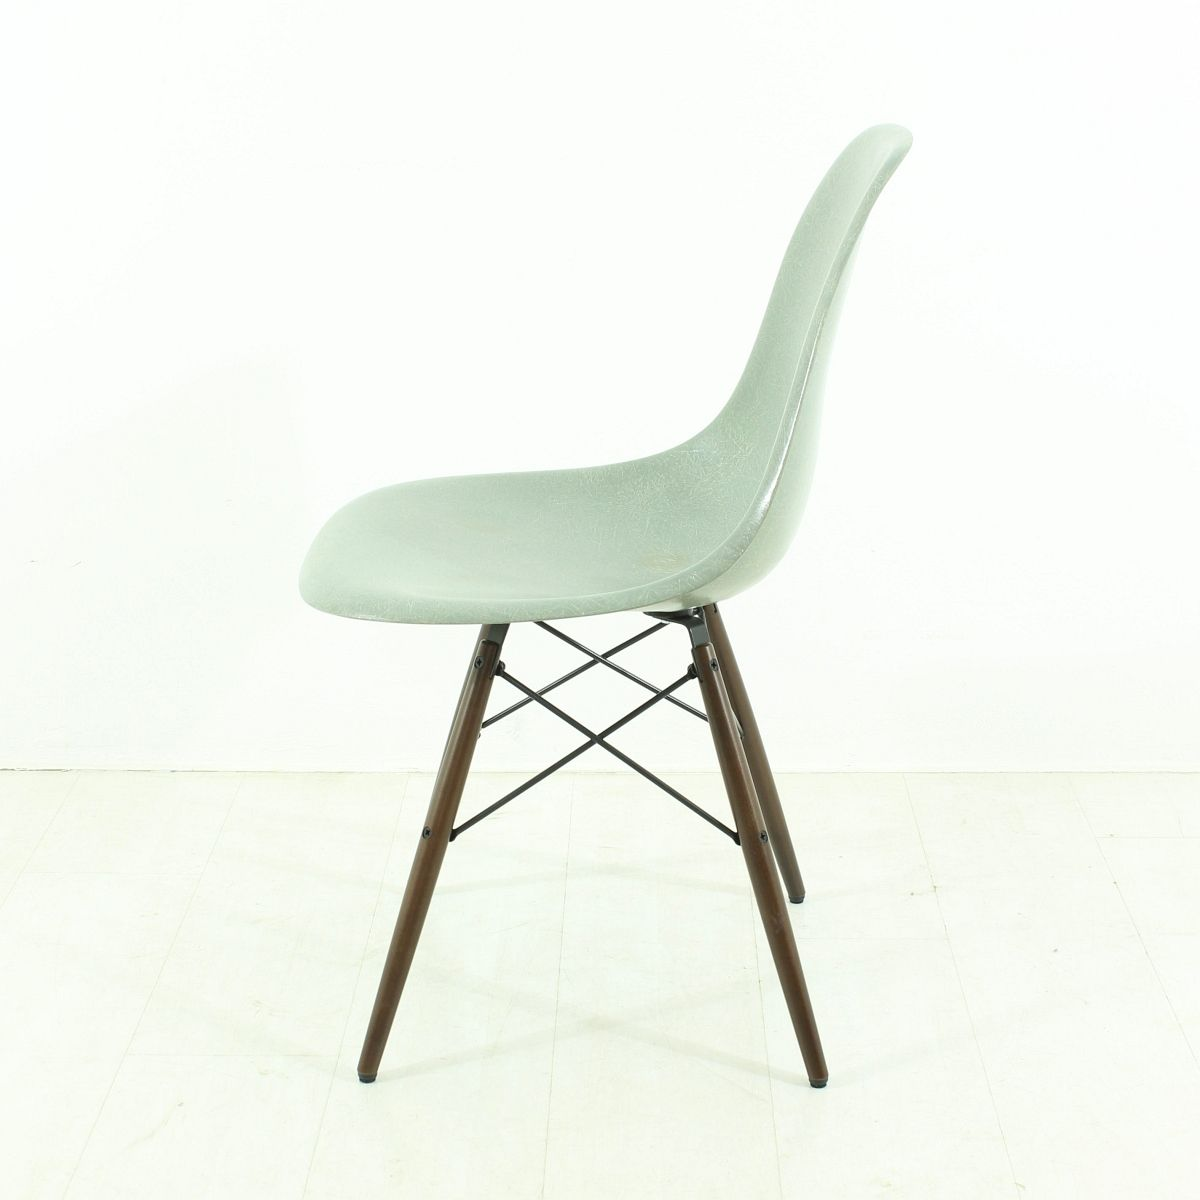 vintage seafoam chair by charles ray eames for vitra for sale at pamono. Black Bedroom Furniture Sets. Home Design Ideas